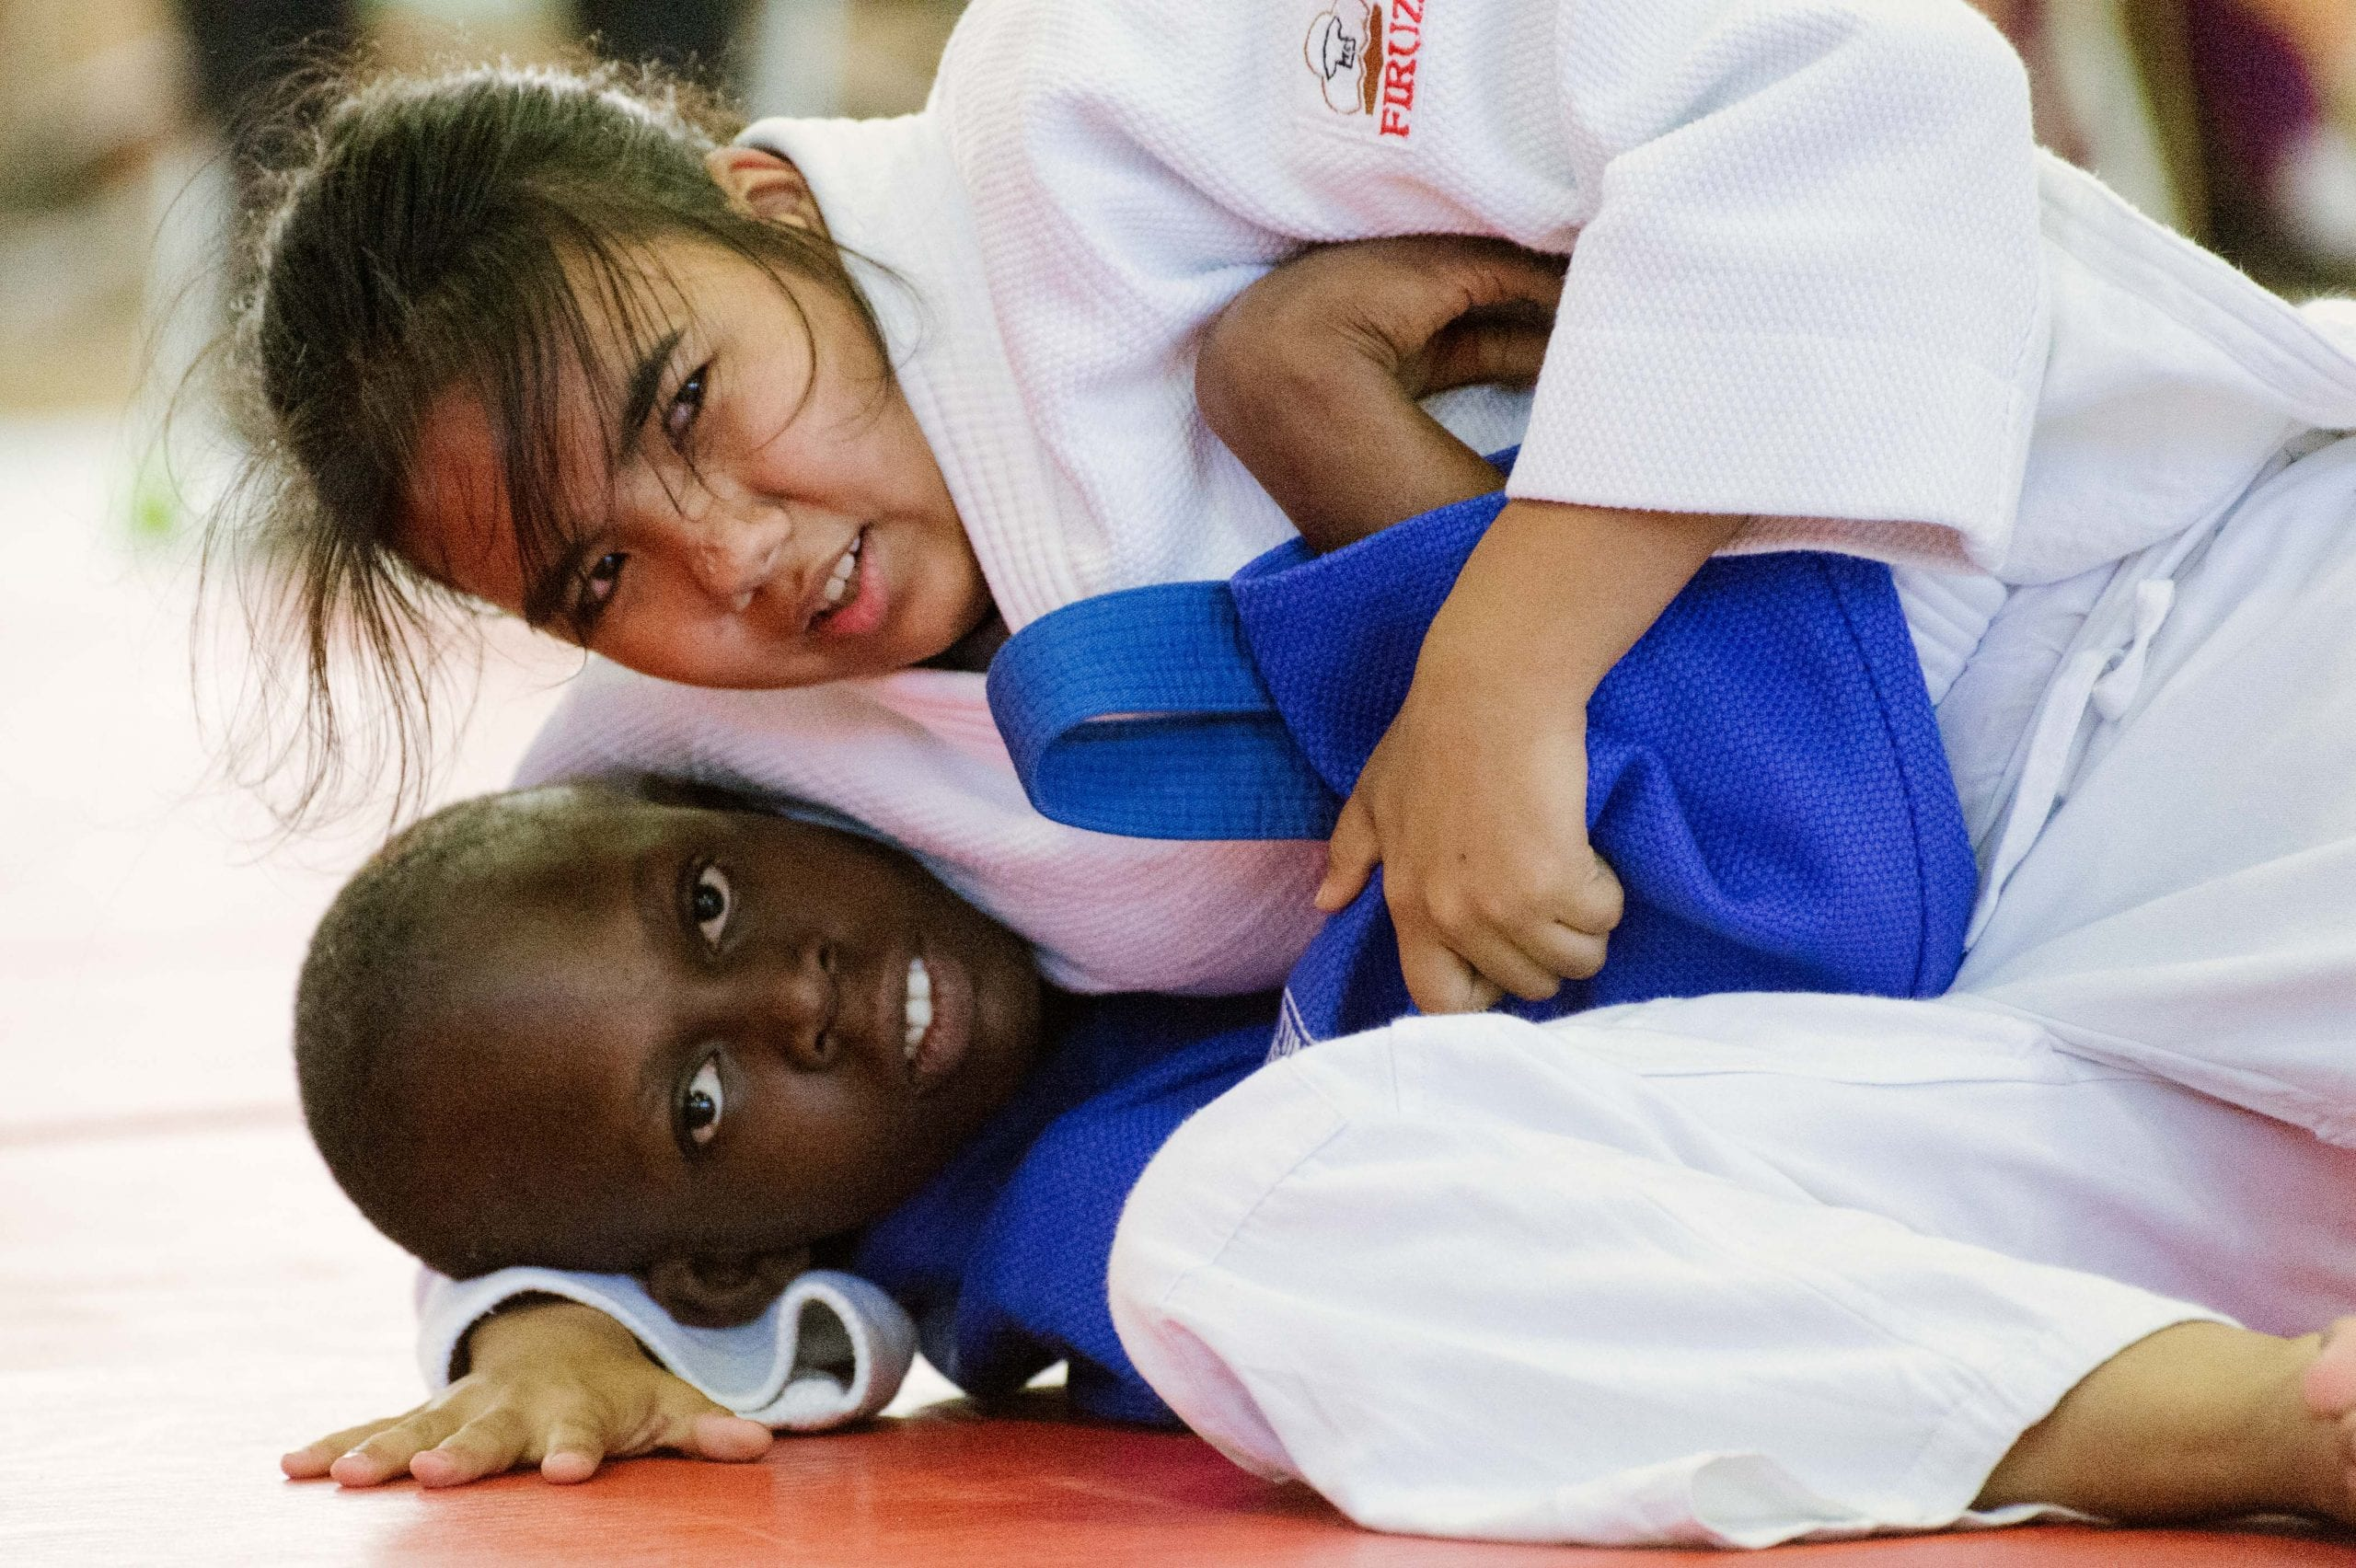 The athletes had a chance to duke it out during the judo finals on Friday. Photo by Steve Hymon.